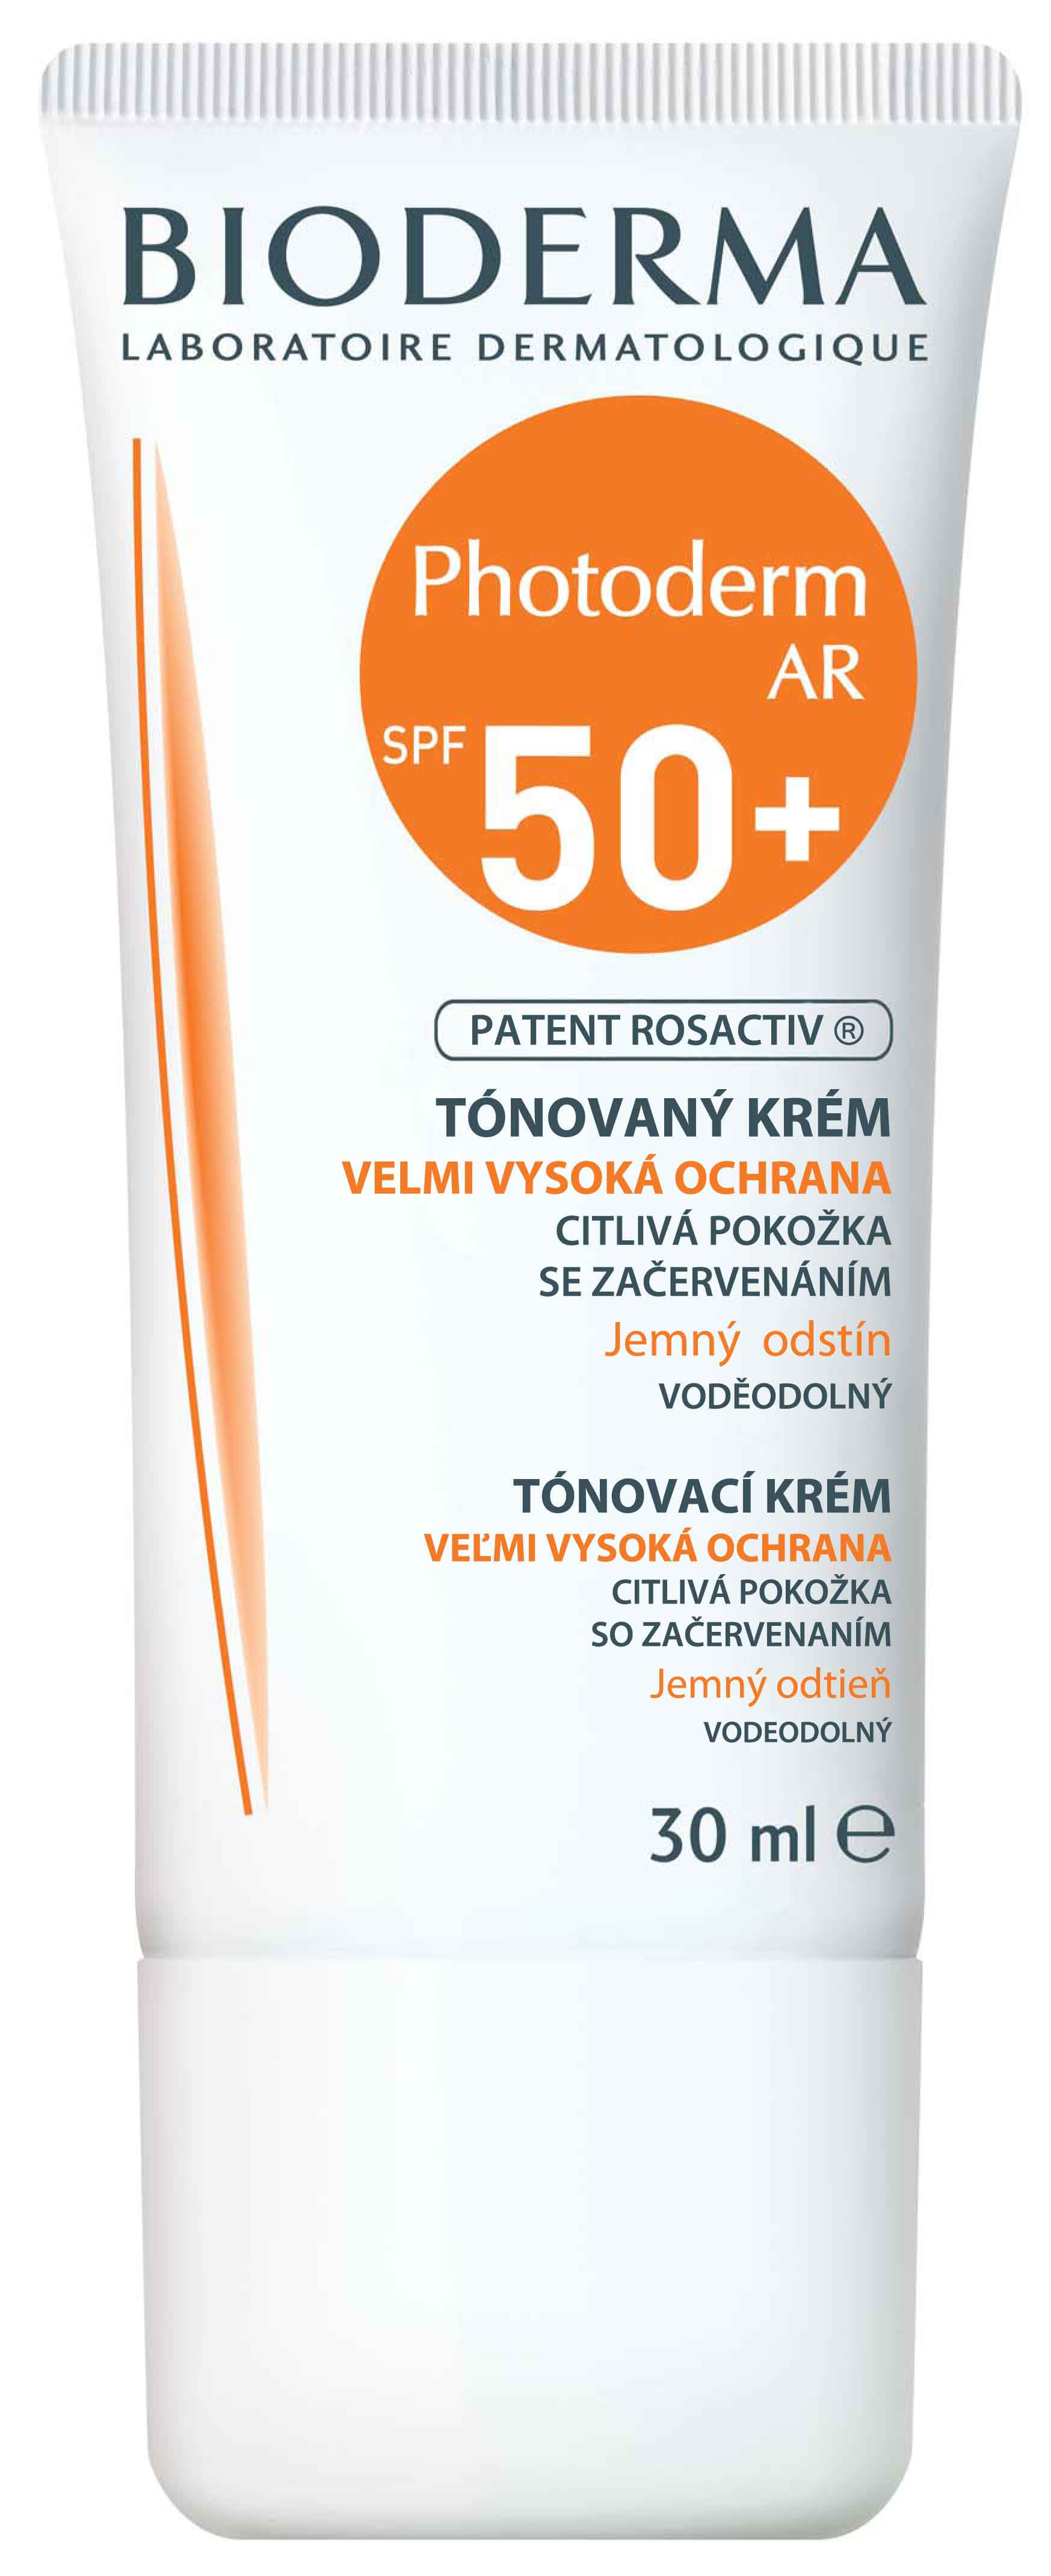 BIODERMA Photoderm AR SPF 50 plus Tónovaný krém 30 ml